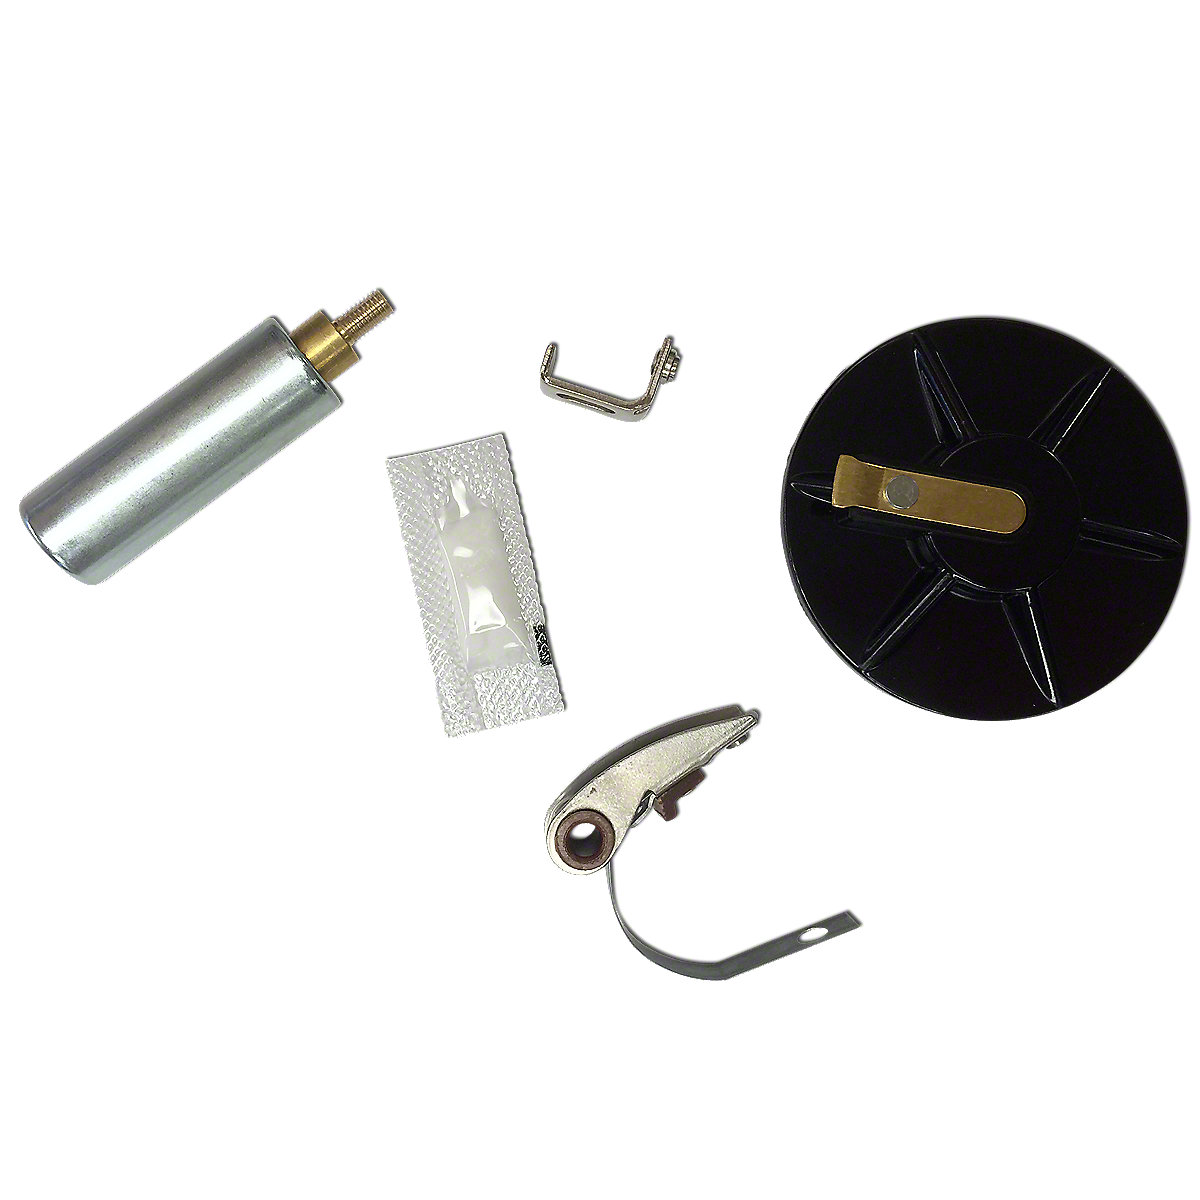 ABC120 - Ignition Tune Up Kit